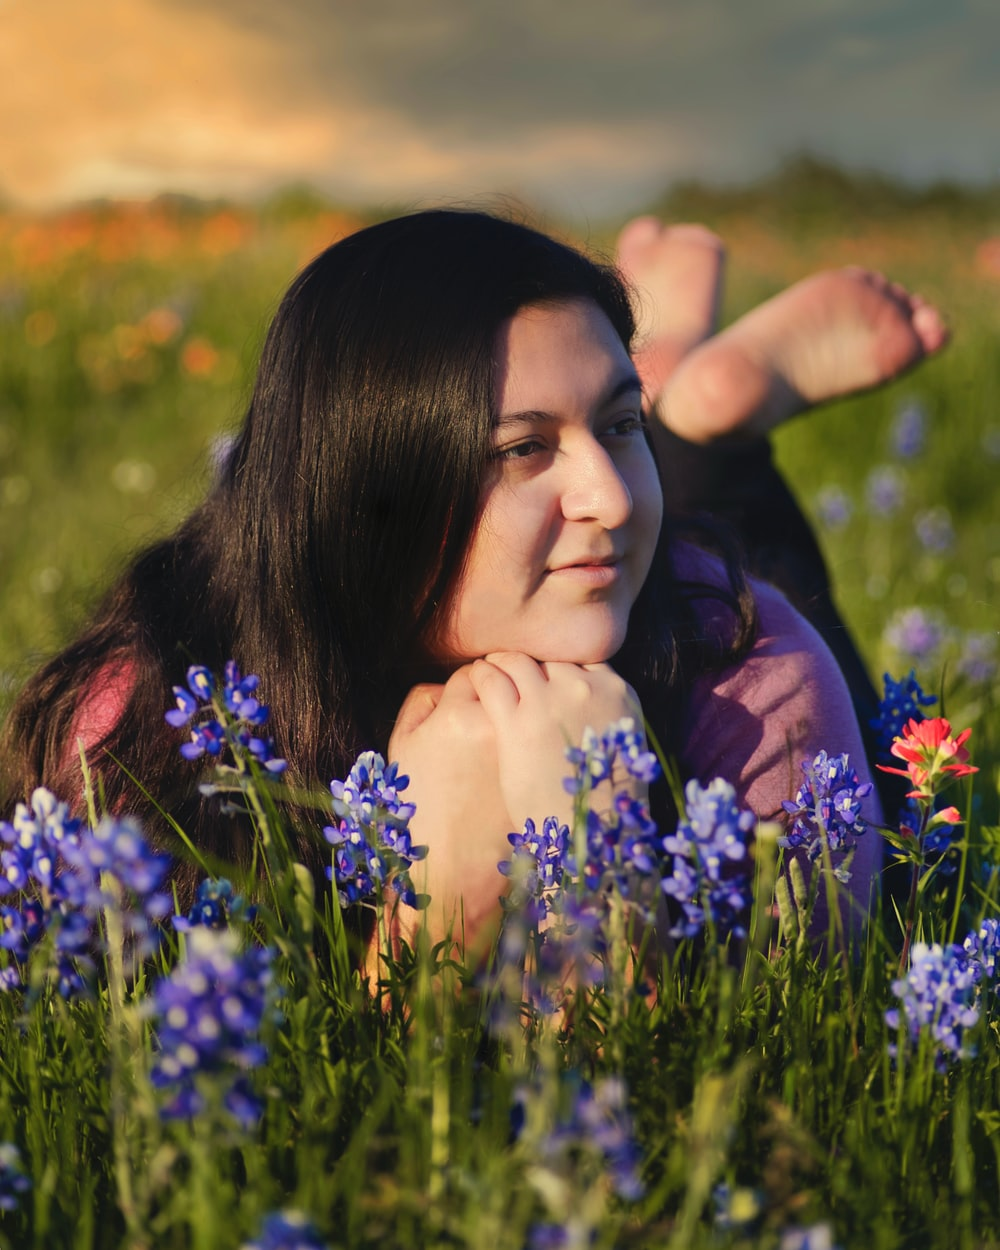 woman in purple shirt lying on green grass field during daytime